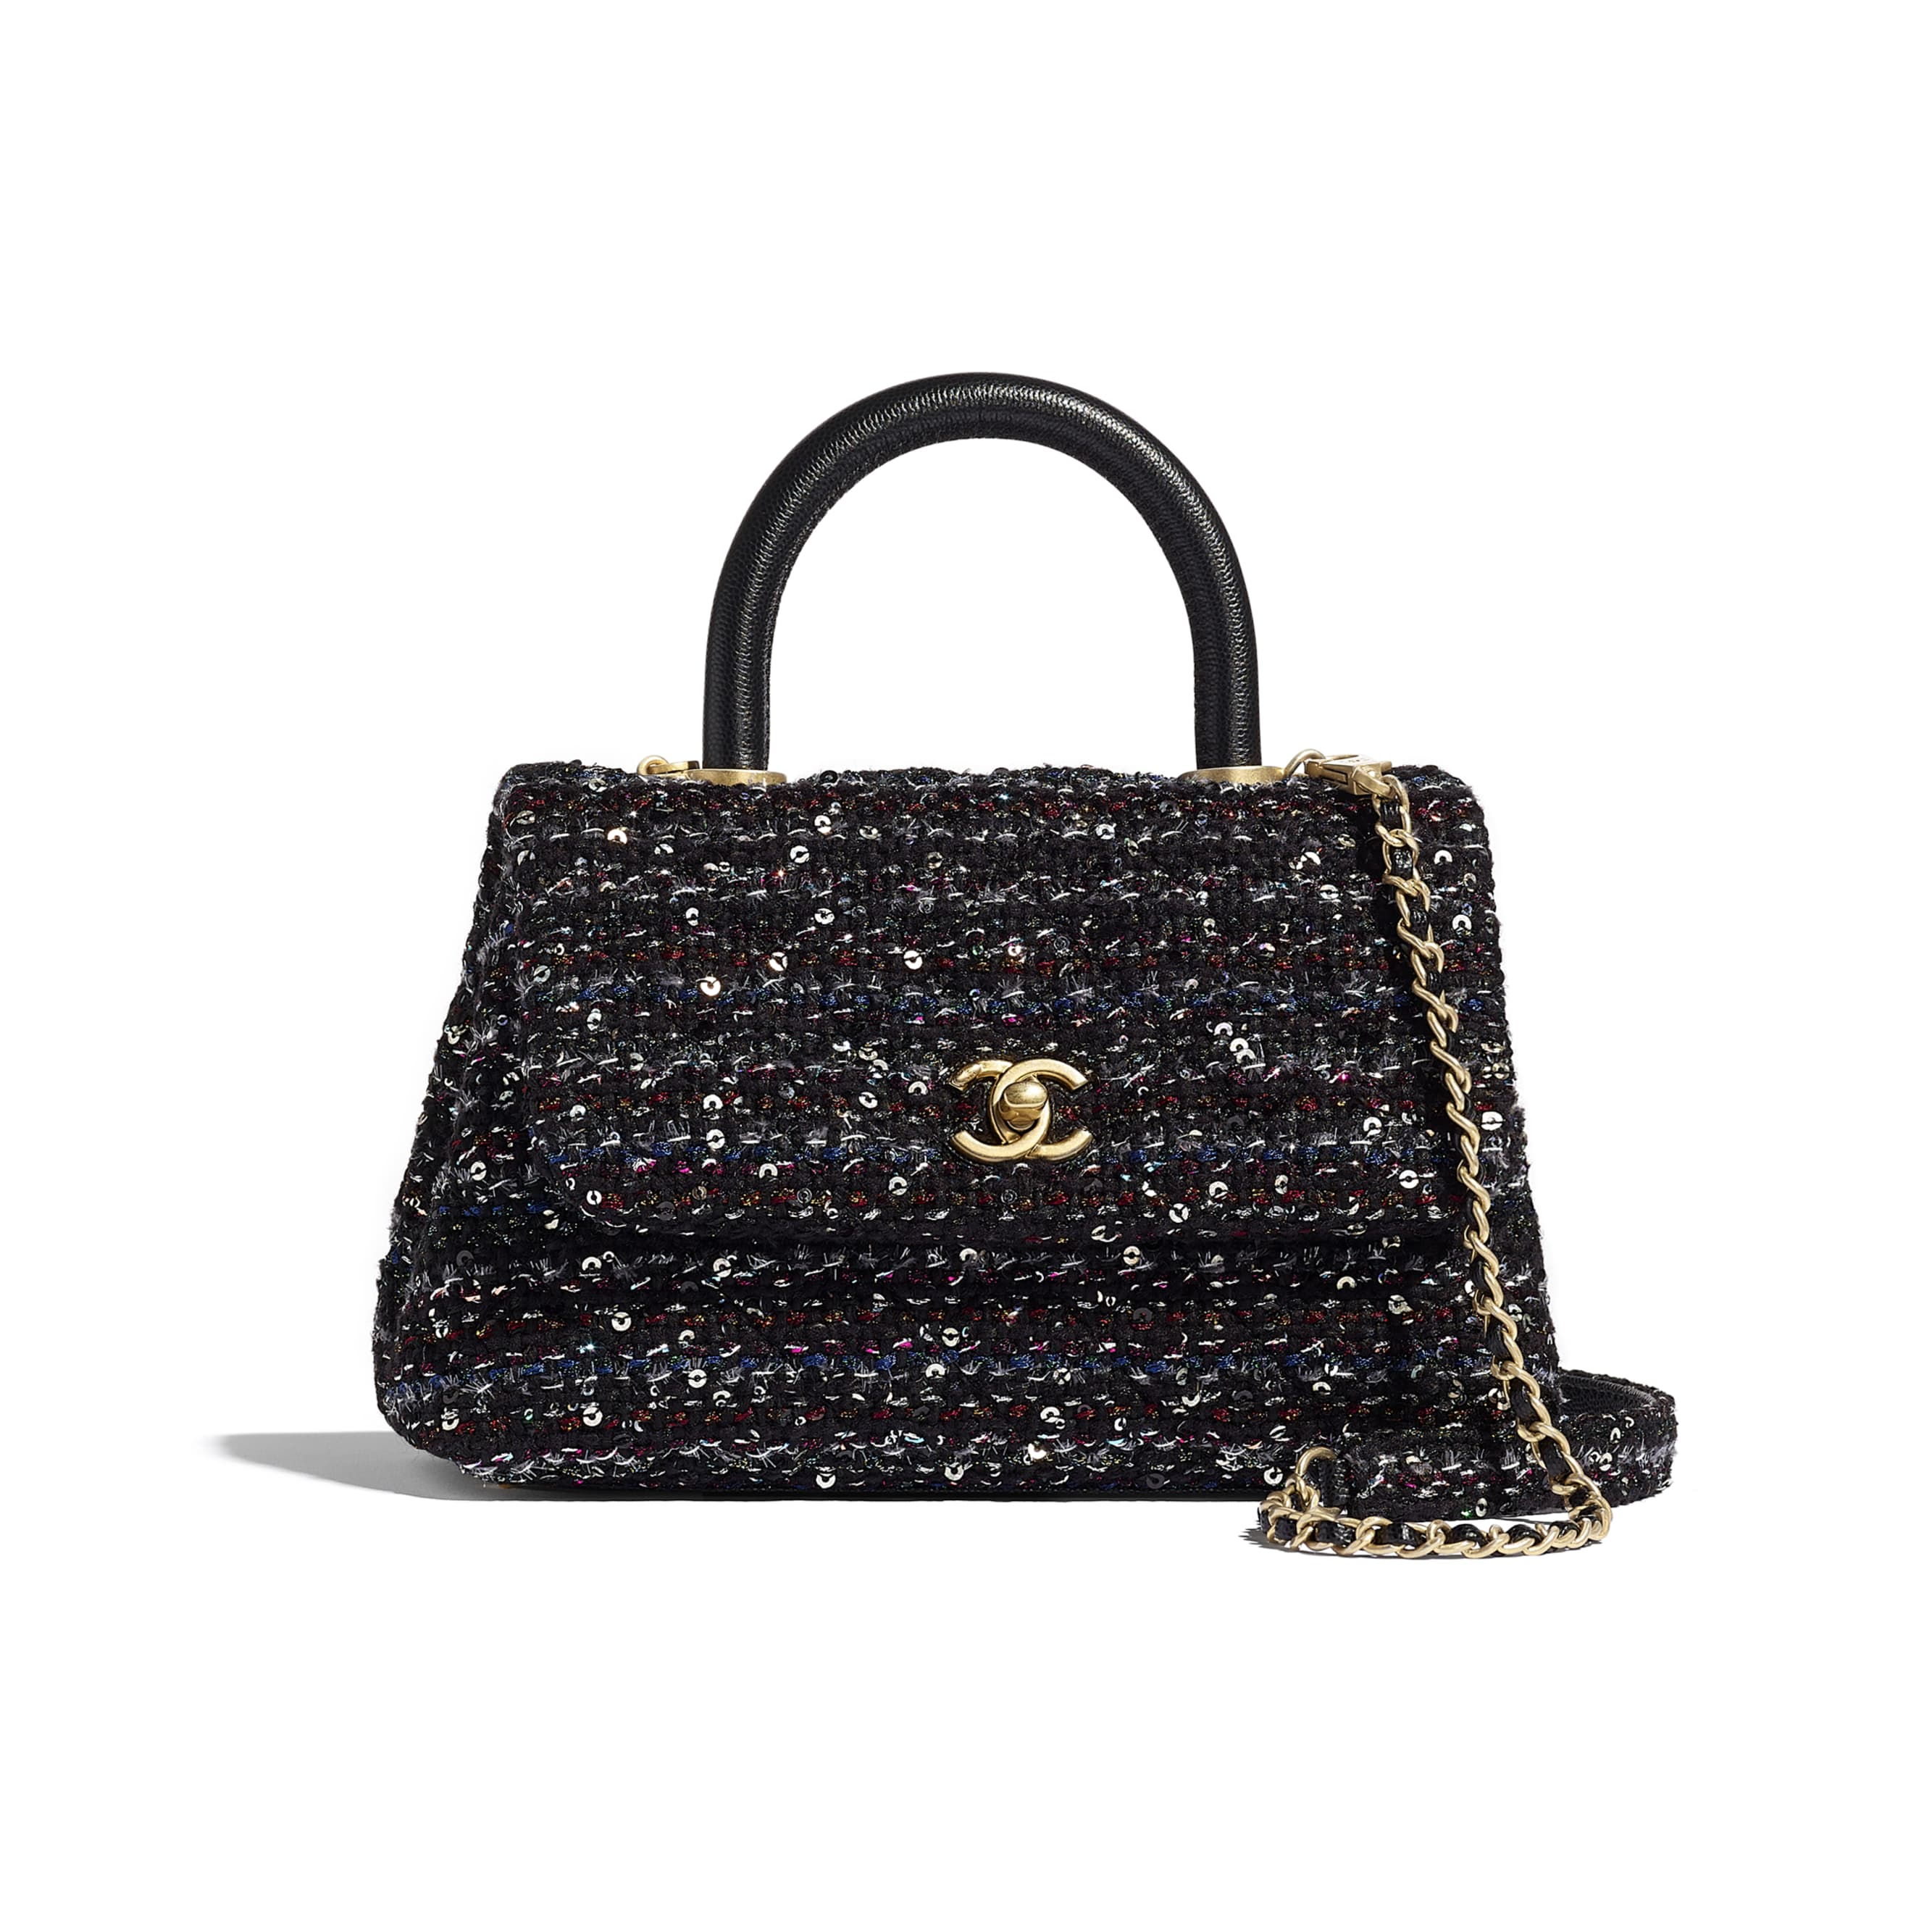 Small Flap Bag With Top Handle - Black, Silver, Blue & Red - Tweed, Grained Calfskin & Gold-Tone Metal - CHANEL - Default view - see standard sized version